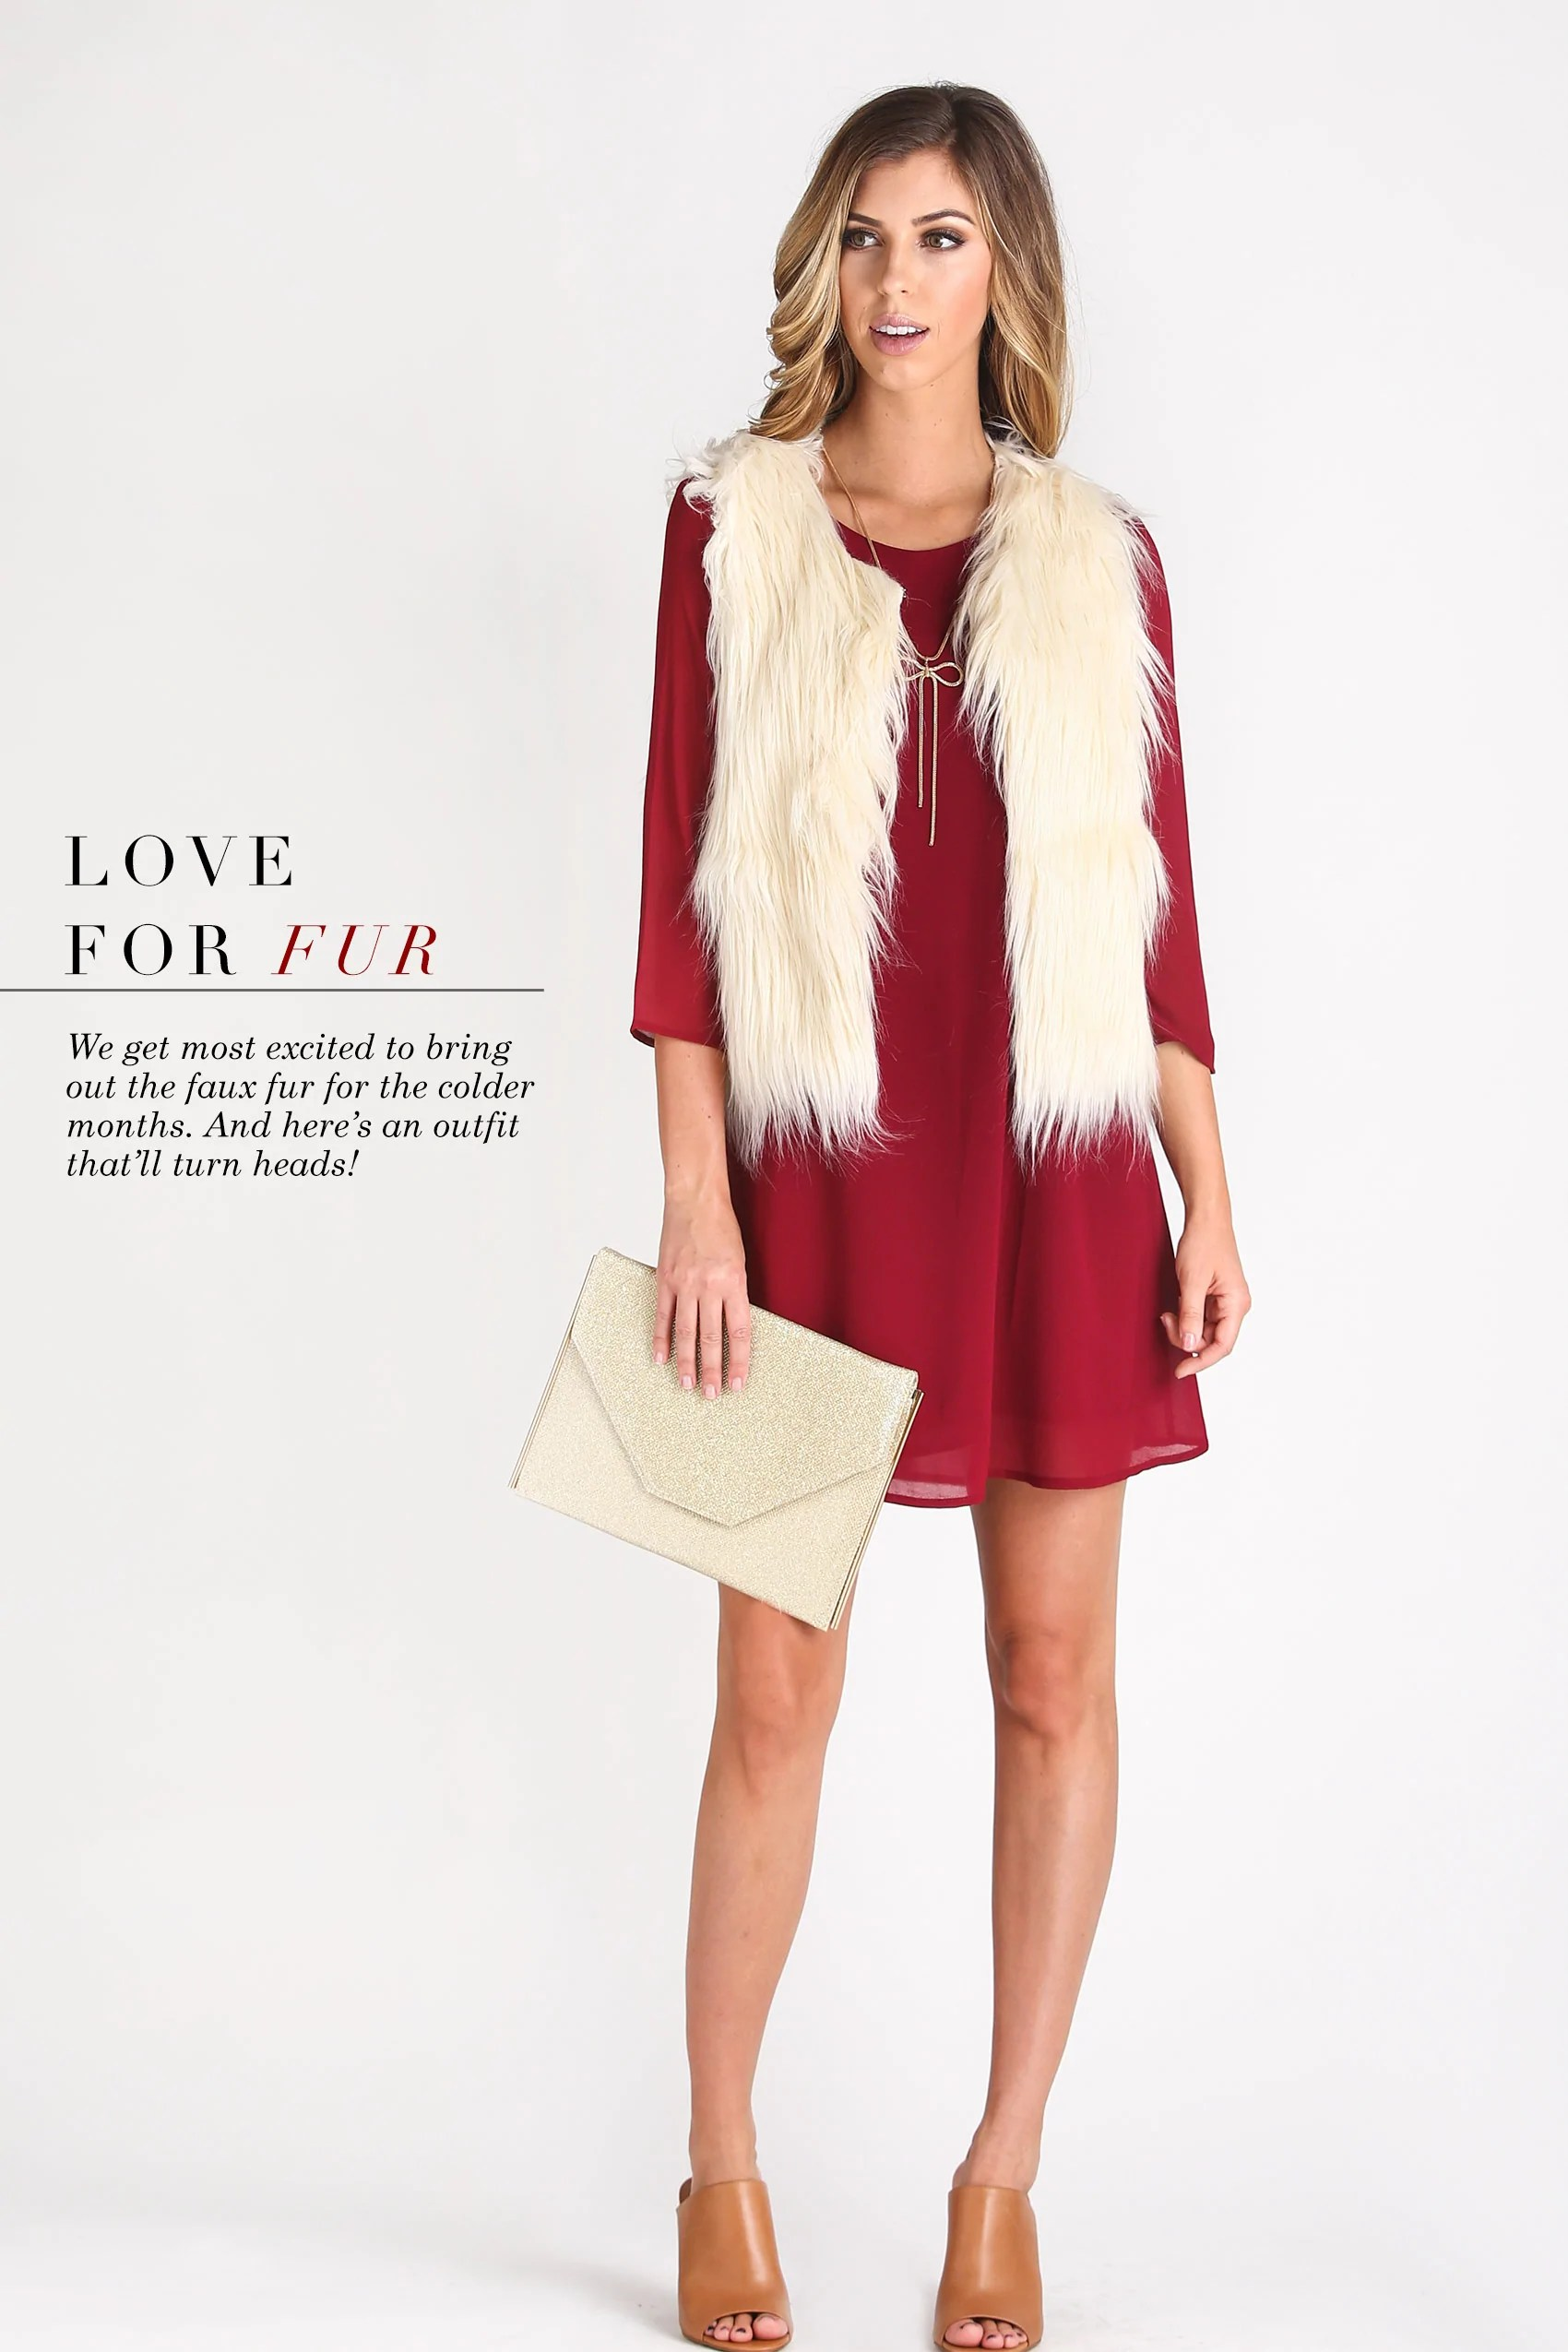 fall fashion, capsule collection, fall capsule, fall outfit ideas, morning lavender fall clothes